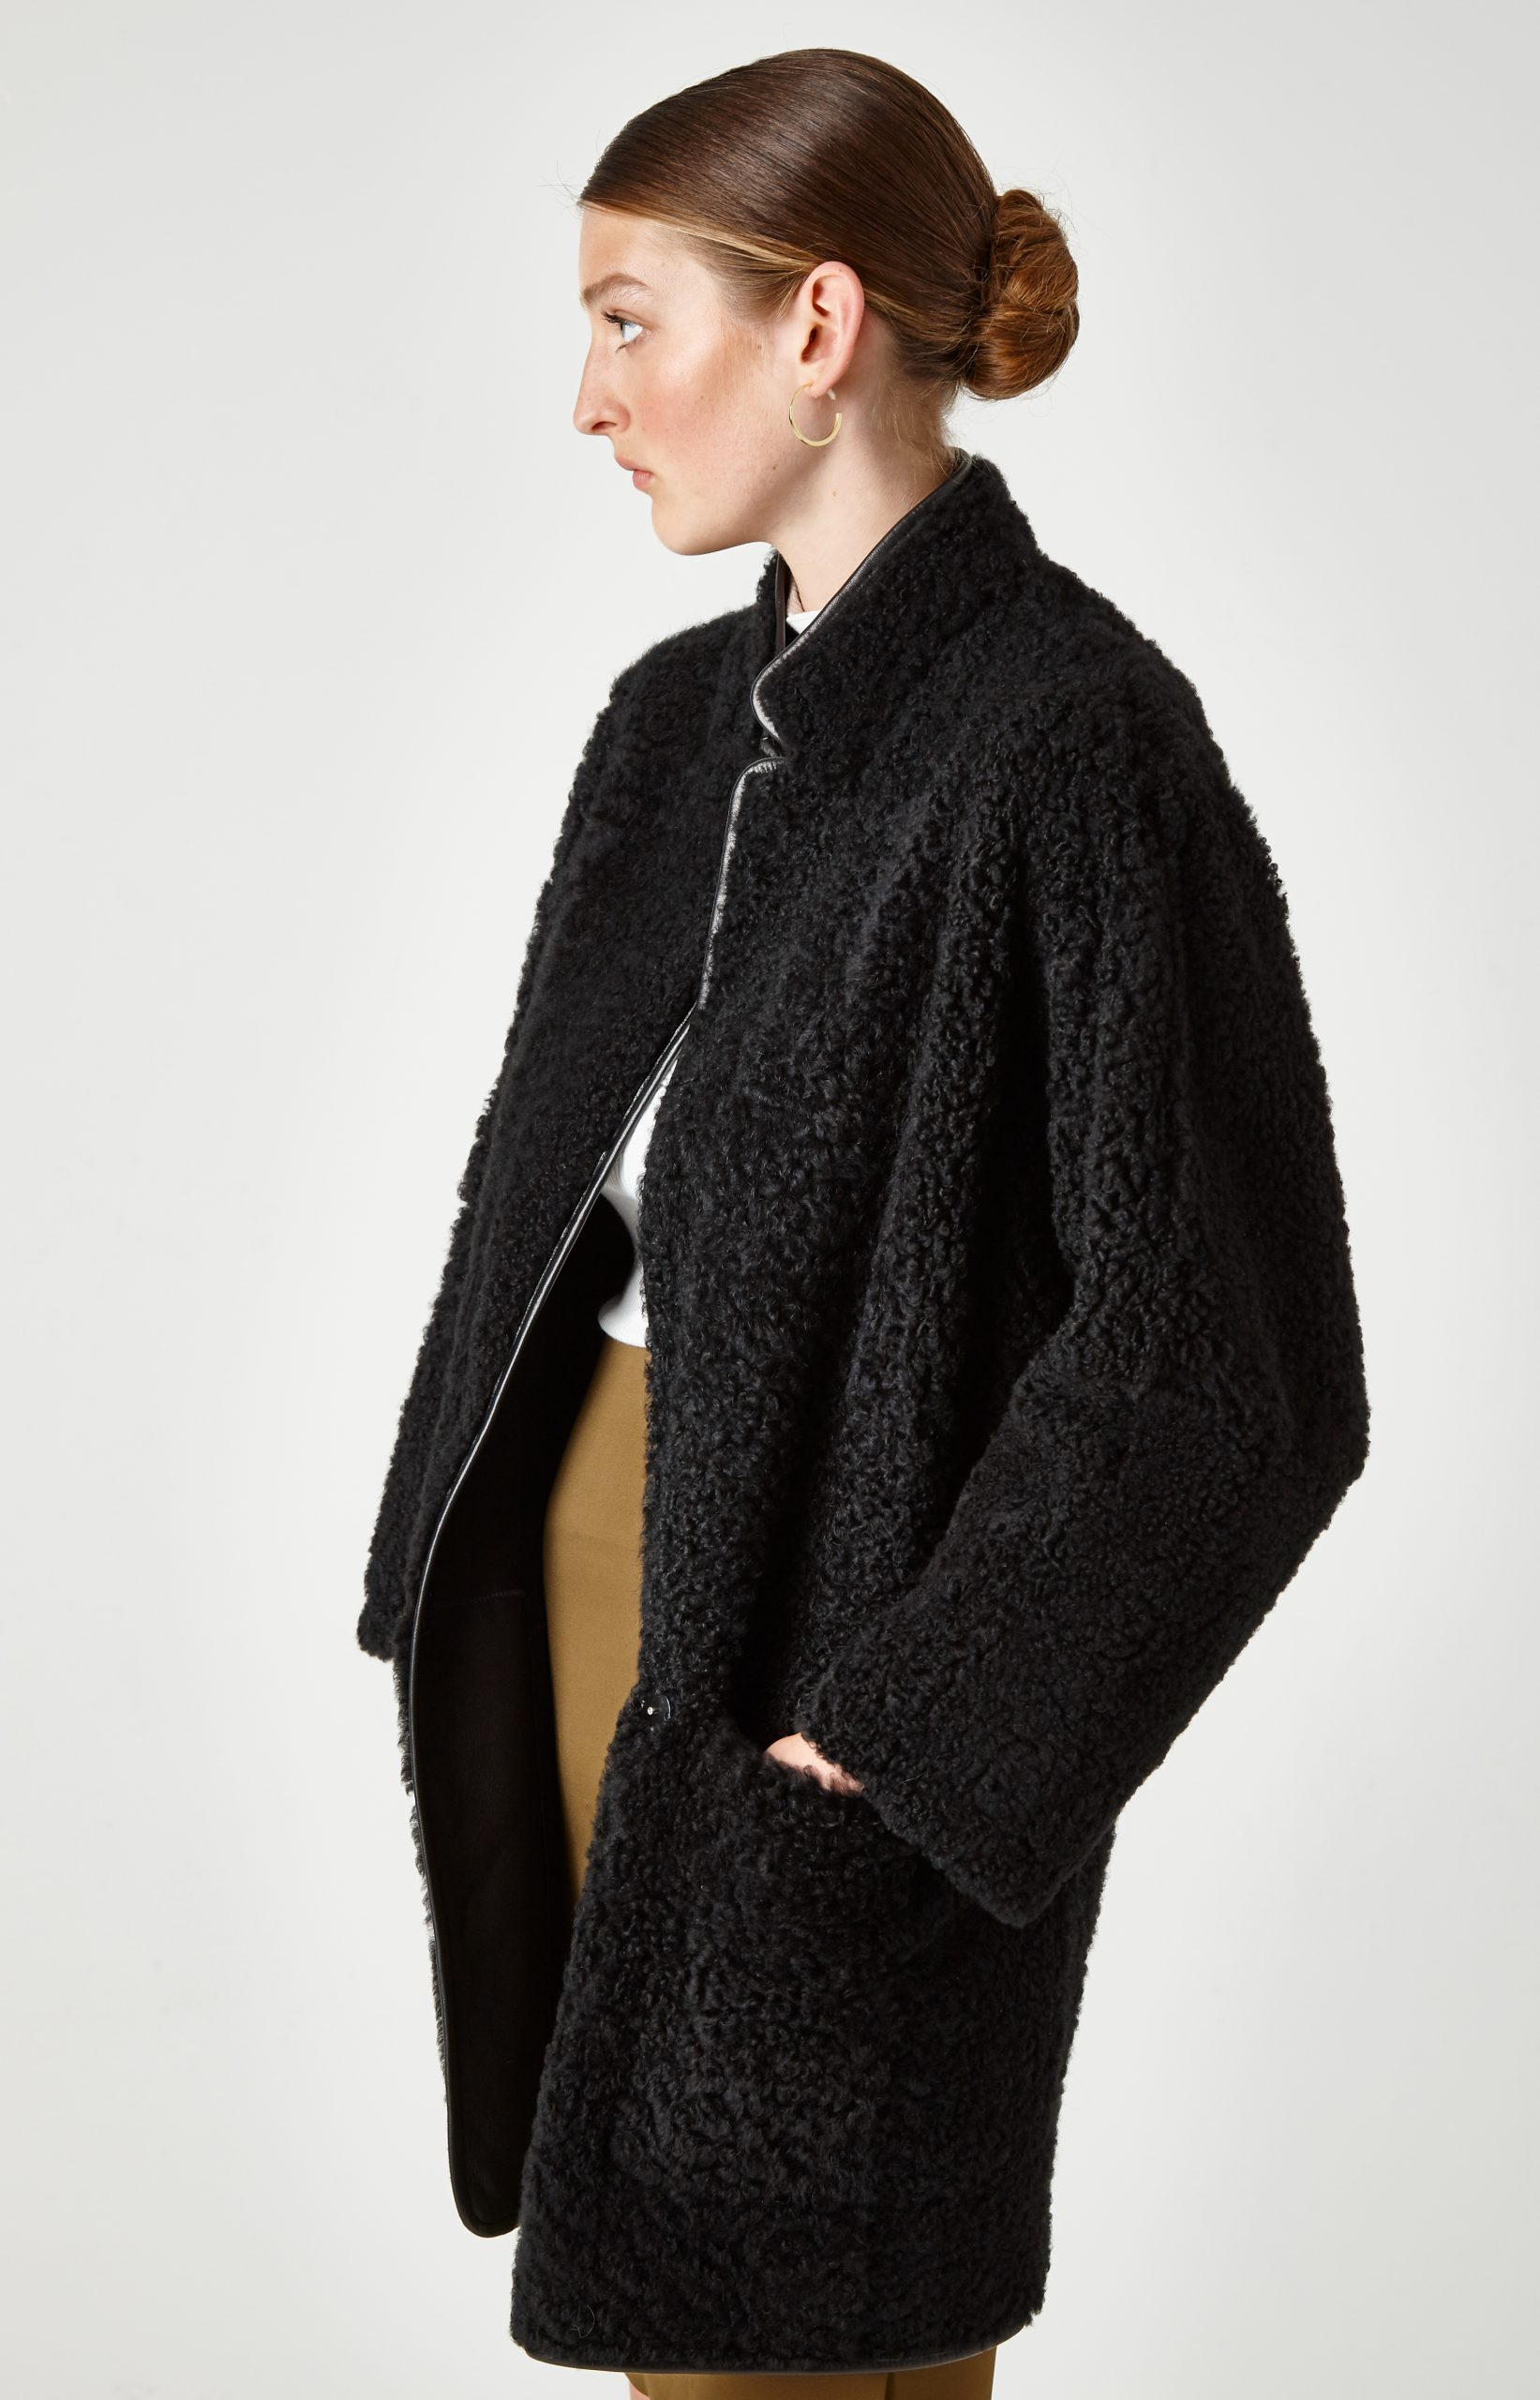 batwing shearling Coat - women | Gushlow & Cole - JXBWC0-BLK